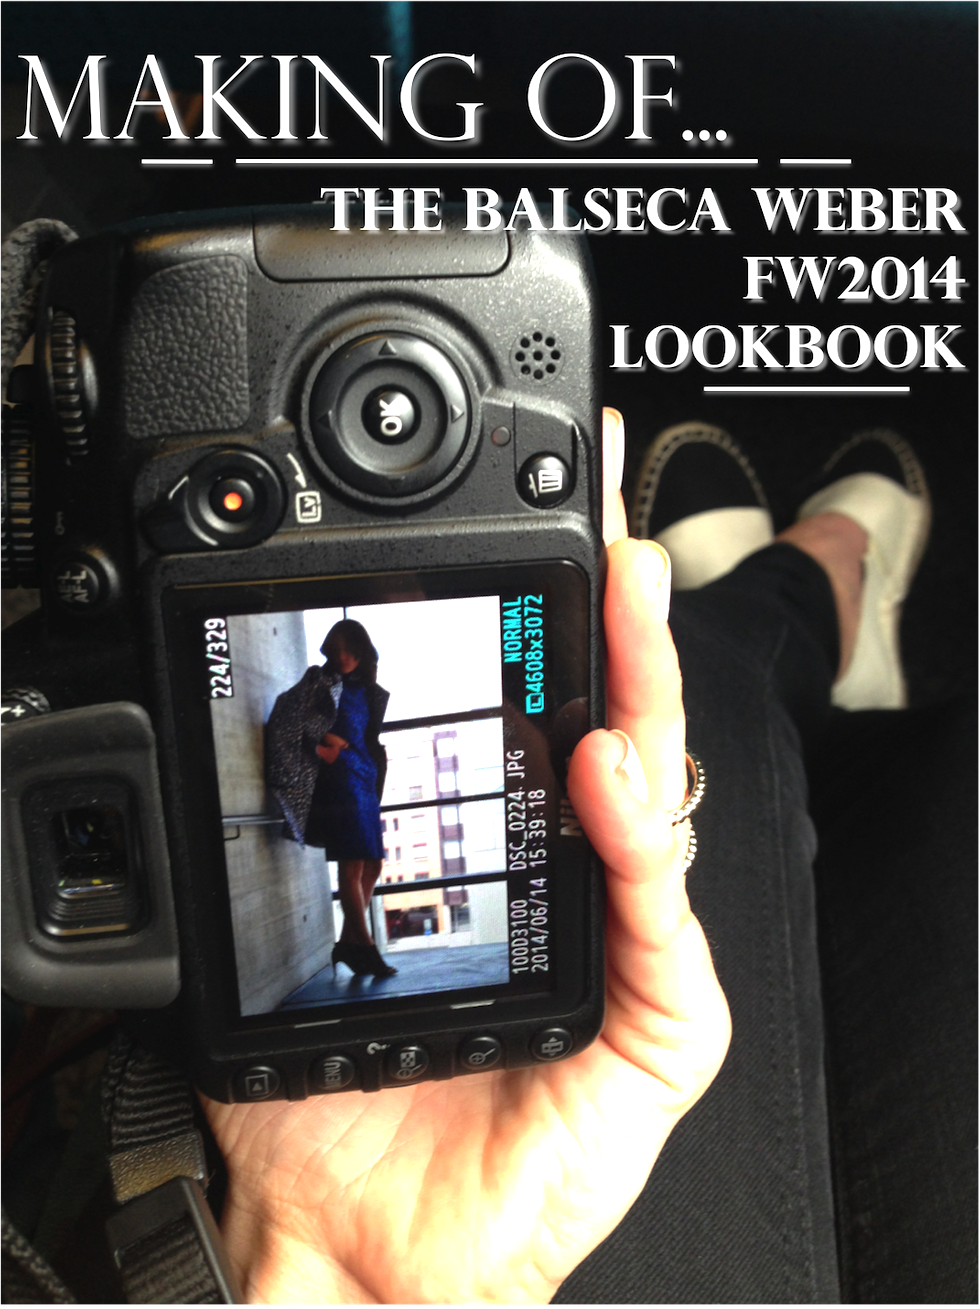 \making of fashion lookbook balseca weber fw 2014\